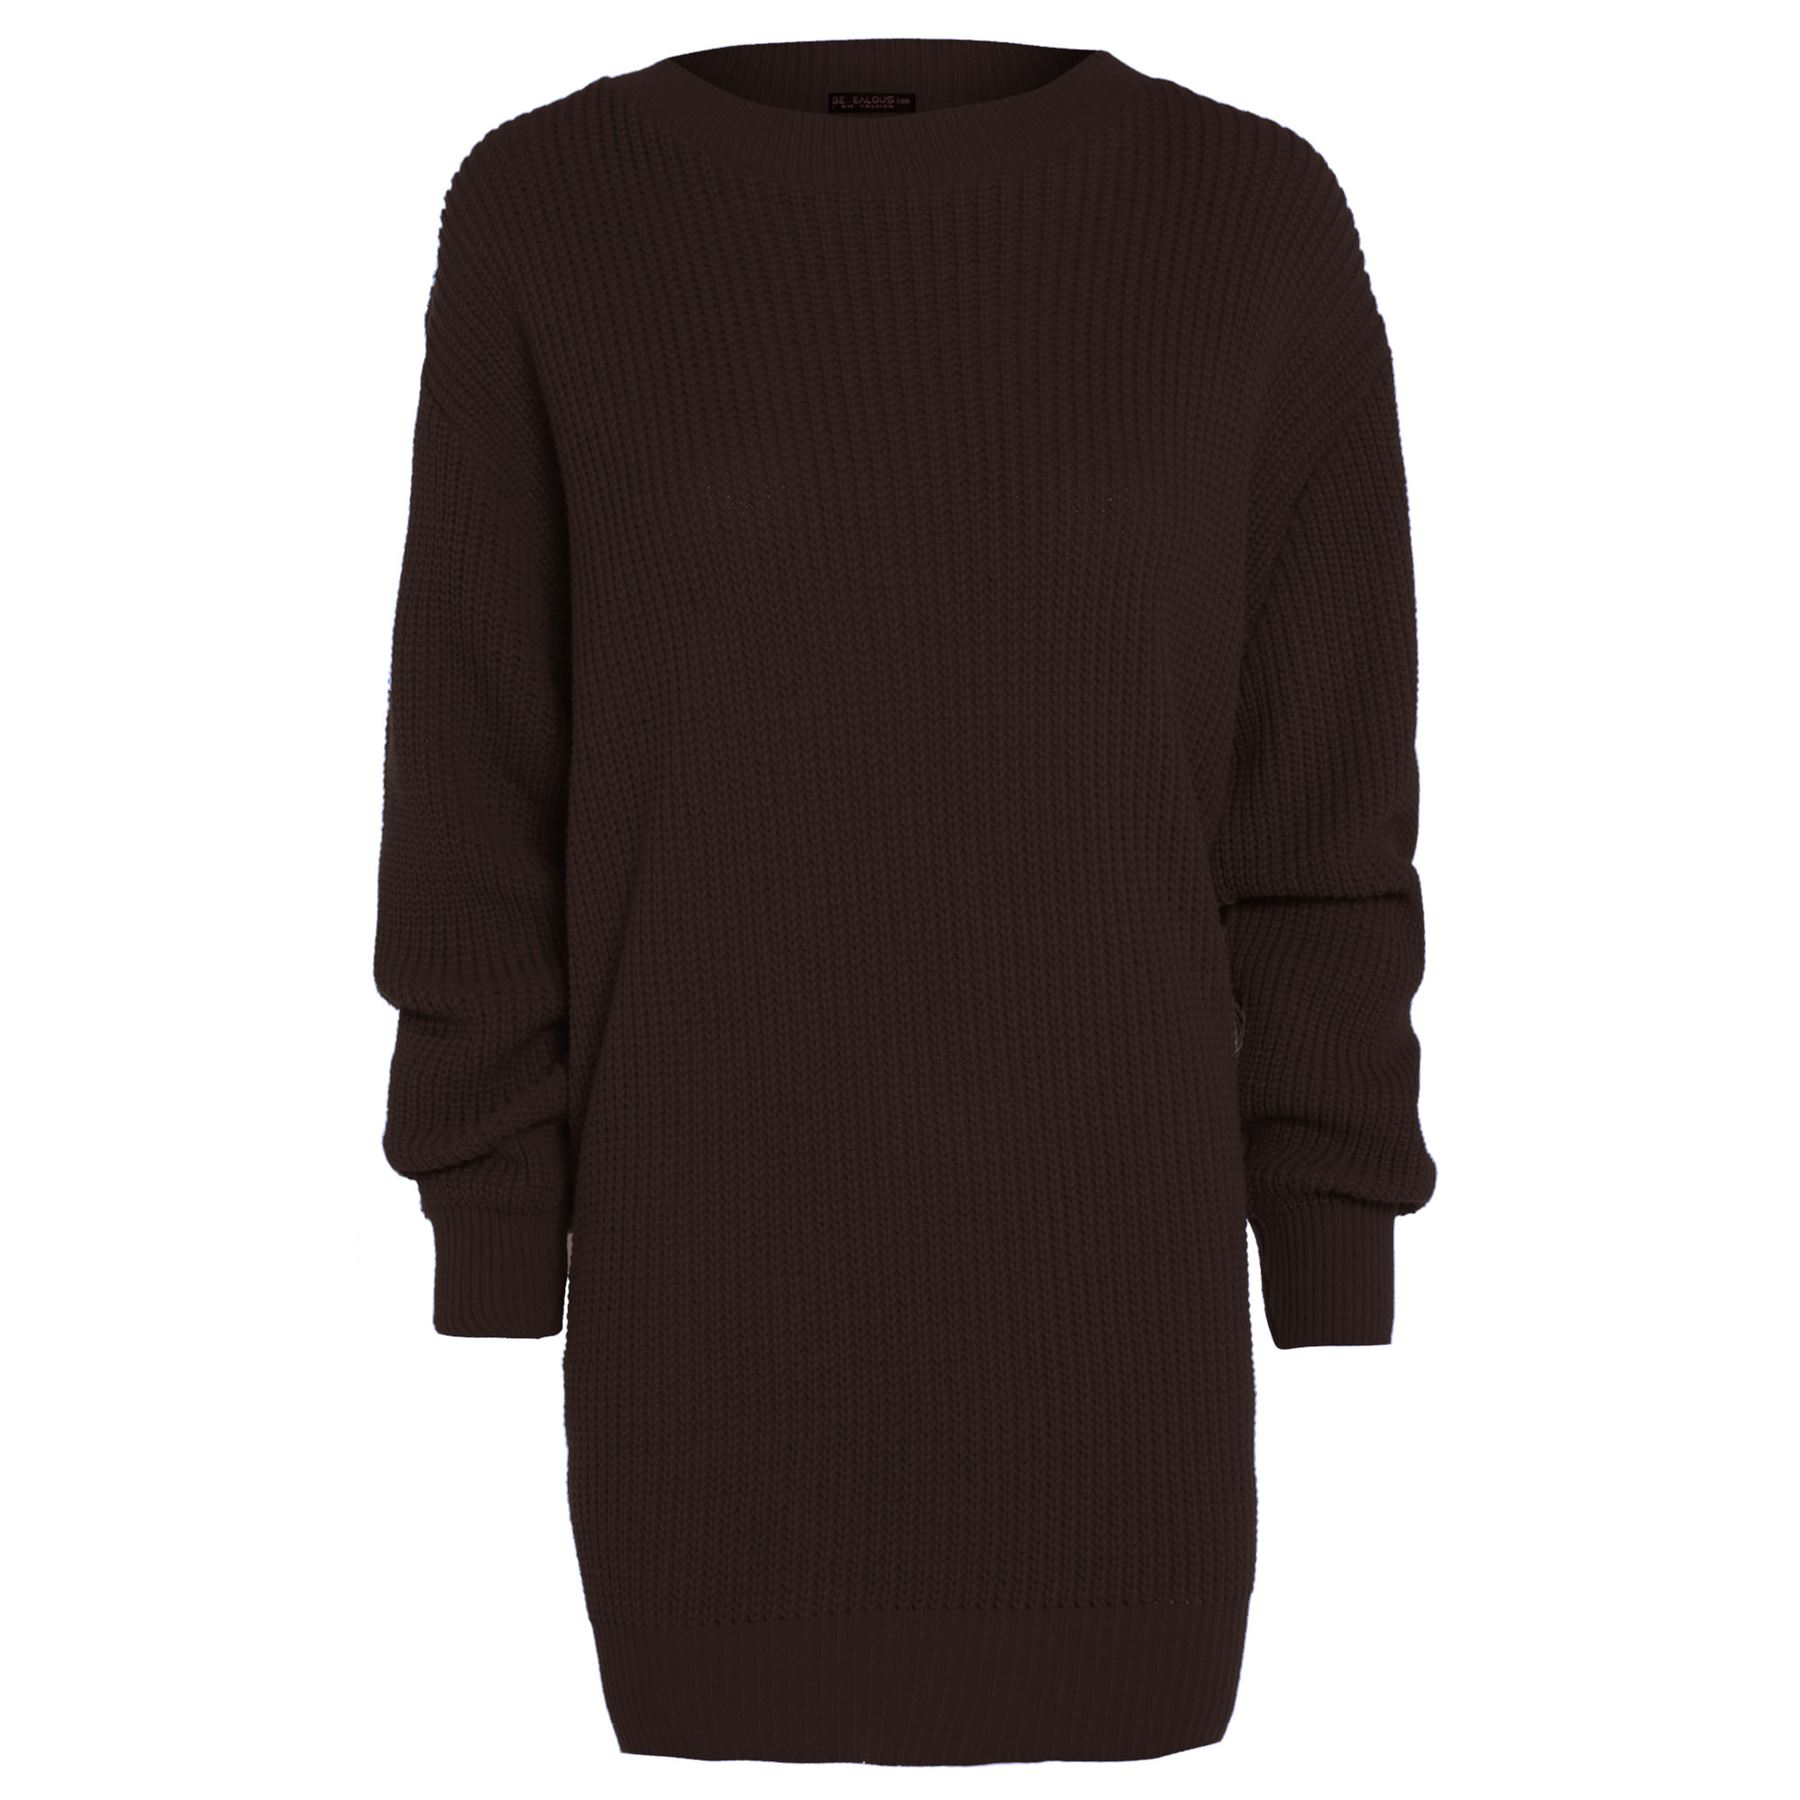 Womens-Oversized-Jumper-Ladies-Dress-Long-Sleeve-Chunky-Knitted-Long-Sweater-Top thumbnail 9